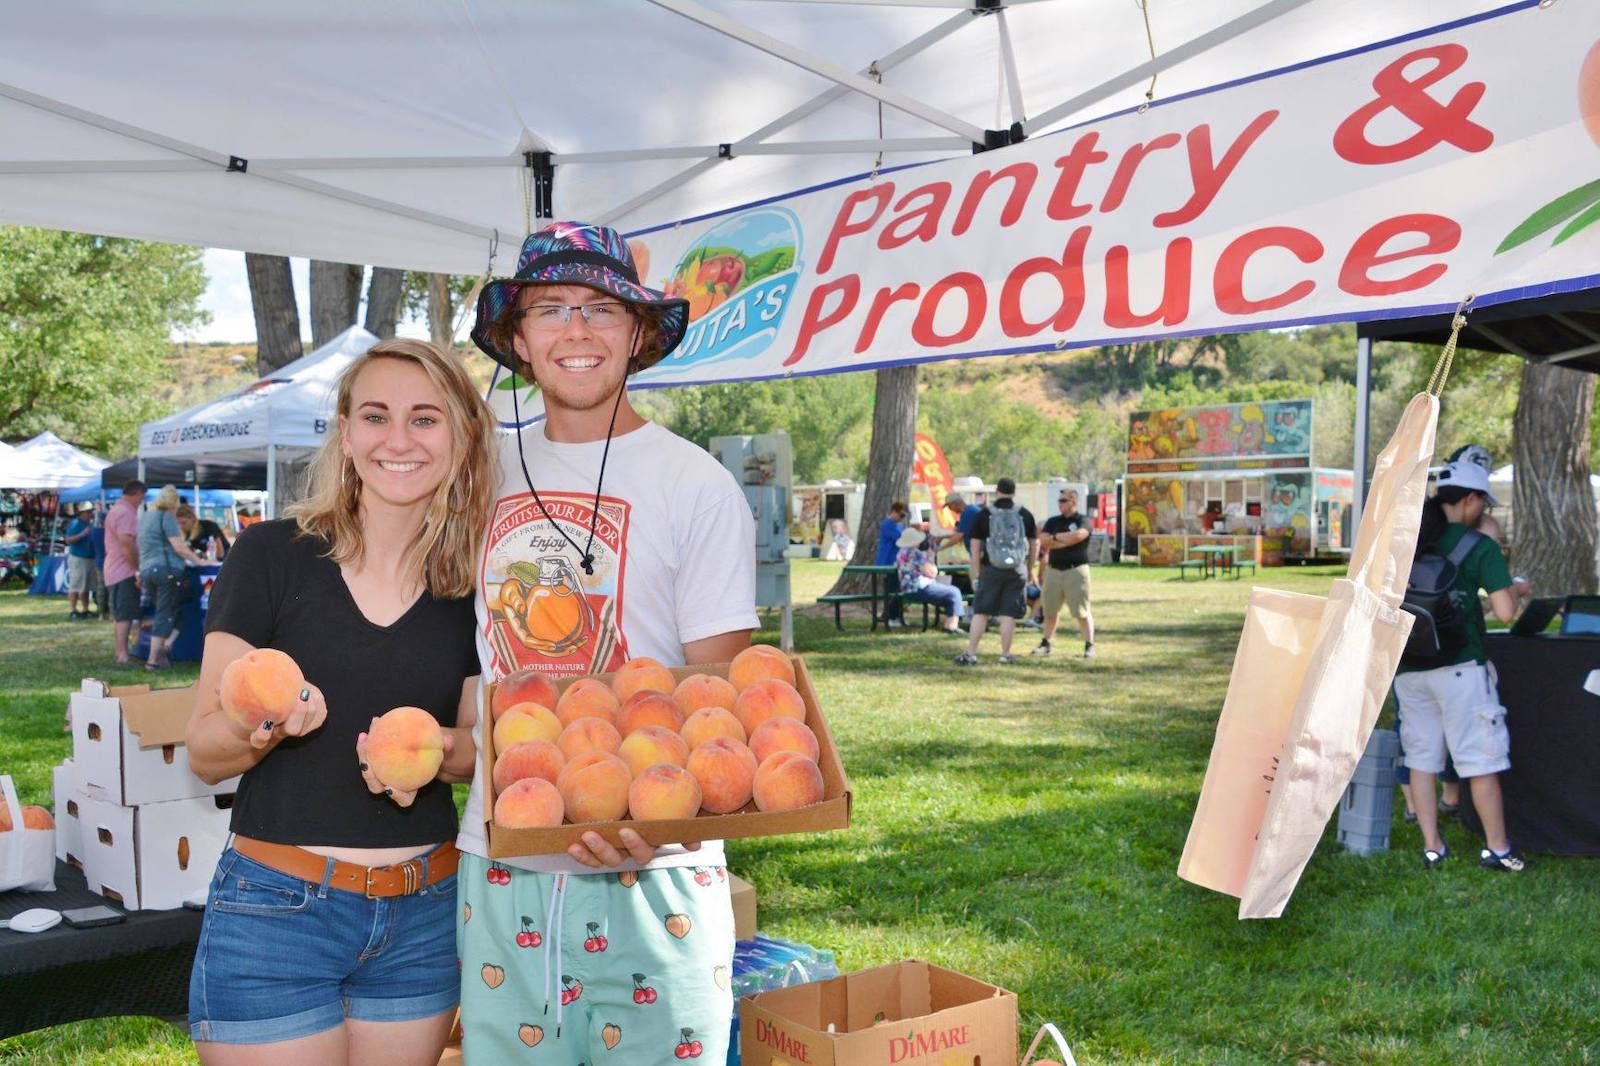 Image of two people at a produce stand holding peaches a the Palisade Peach Festival in Colorado